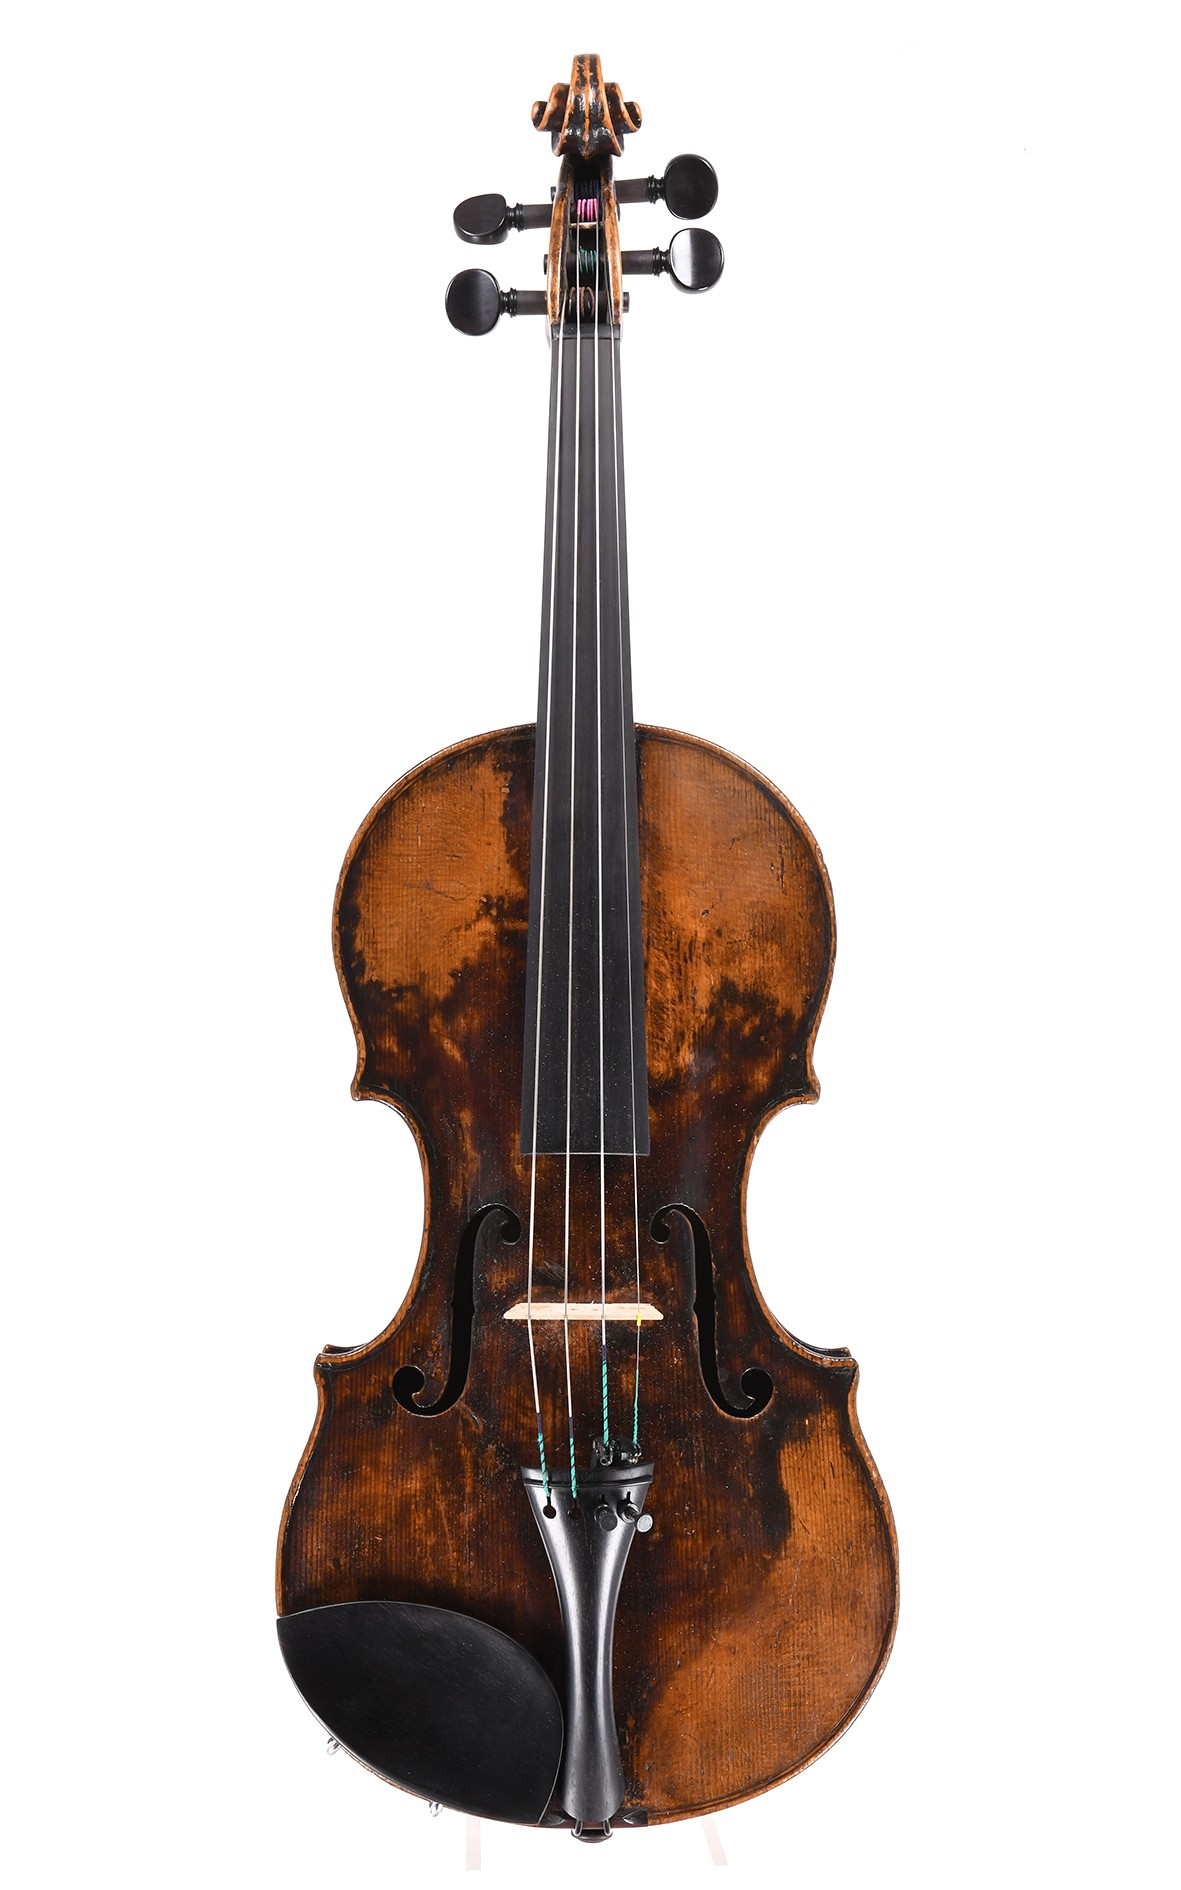 19th century violin, probably from Vienna - table